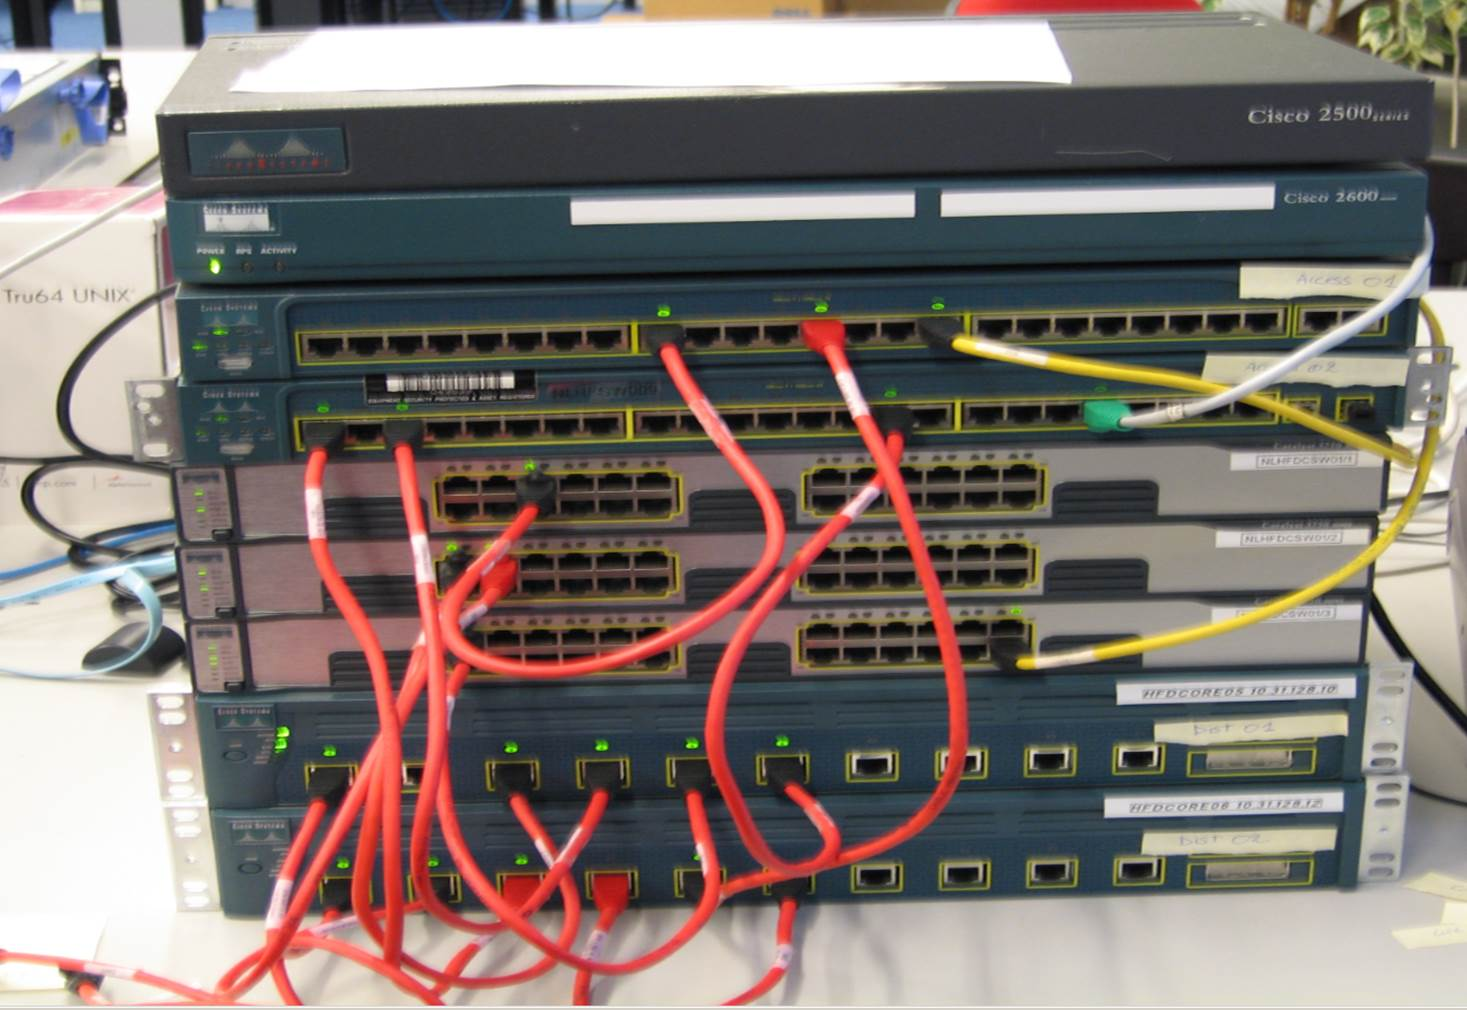 Cisco-Routers-Powerful-but-Microware-Ignorant-Aviat-Networks-Makes-them-Smarter